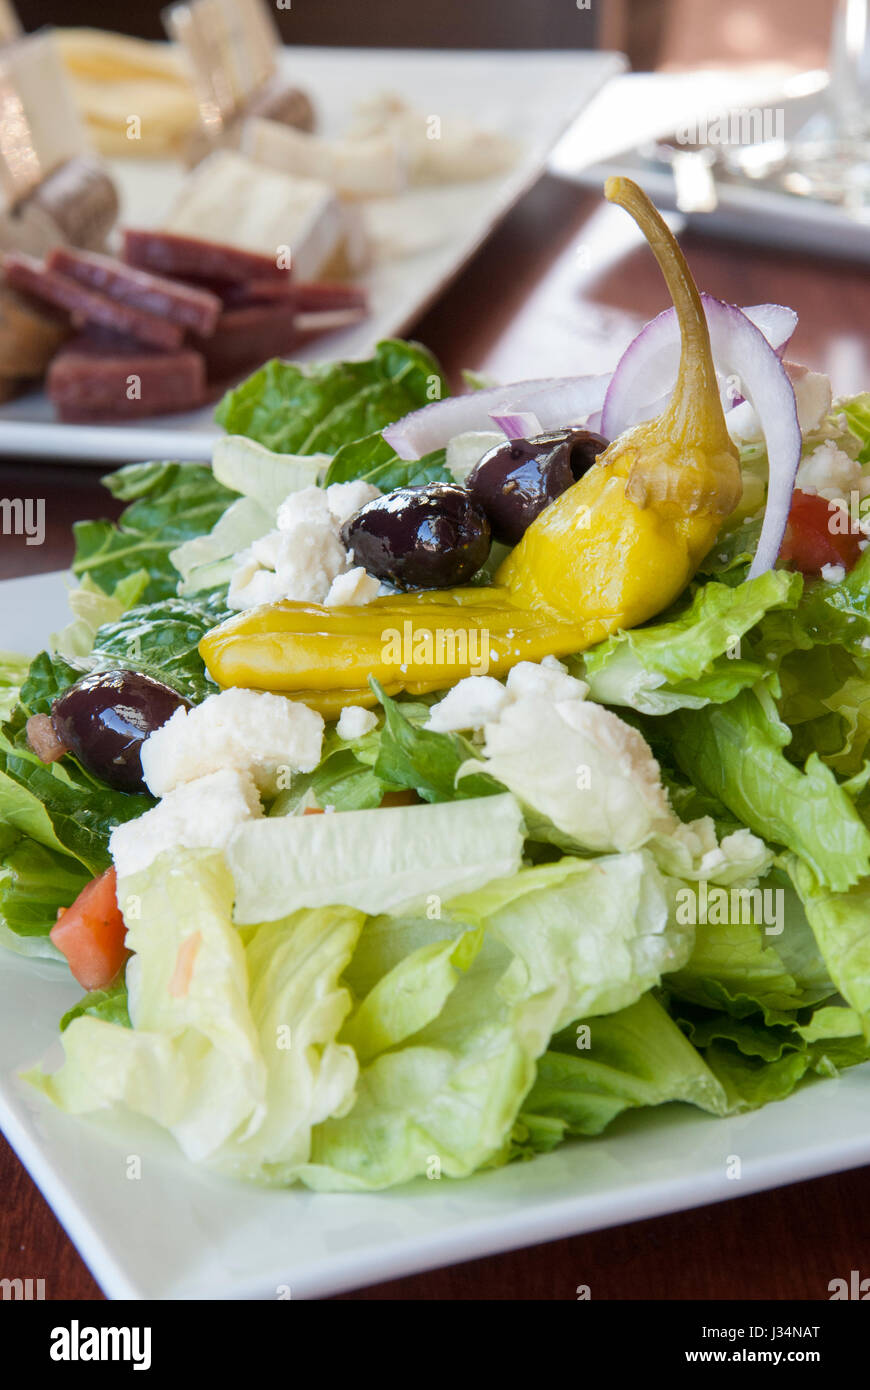 A fresh Greek salad with kalamata olives, feta cheese, and peperoncino makes a lite and healthy lunch, accompanied - Stock Image